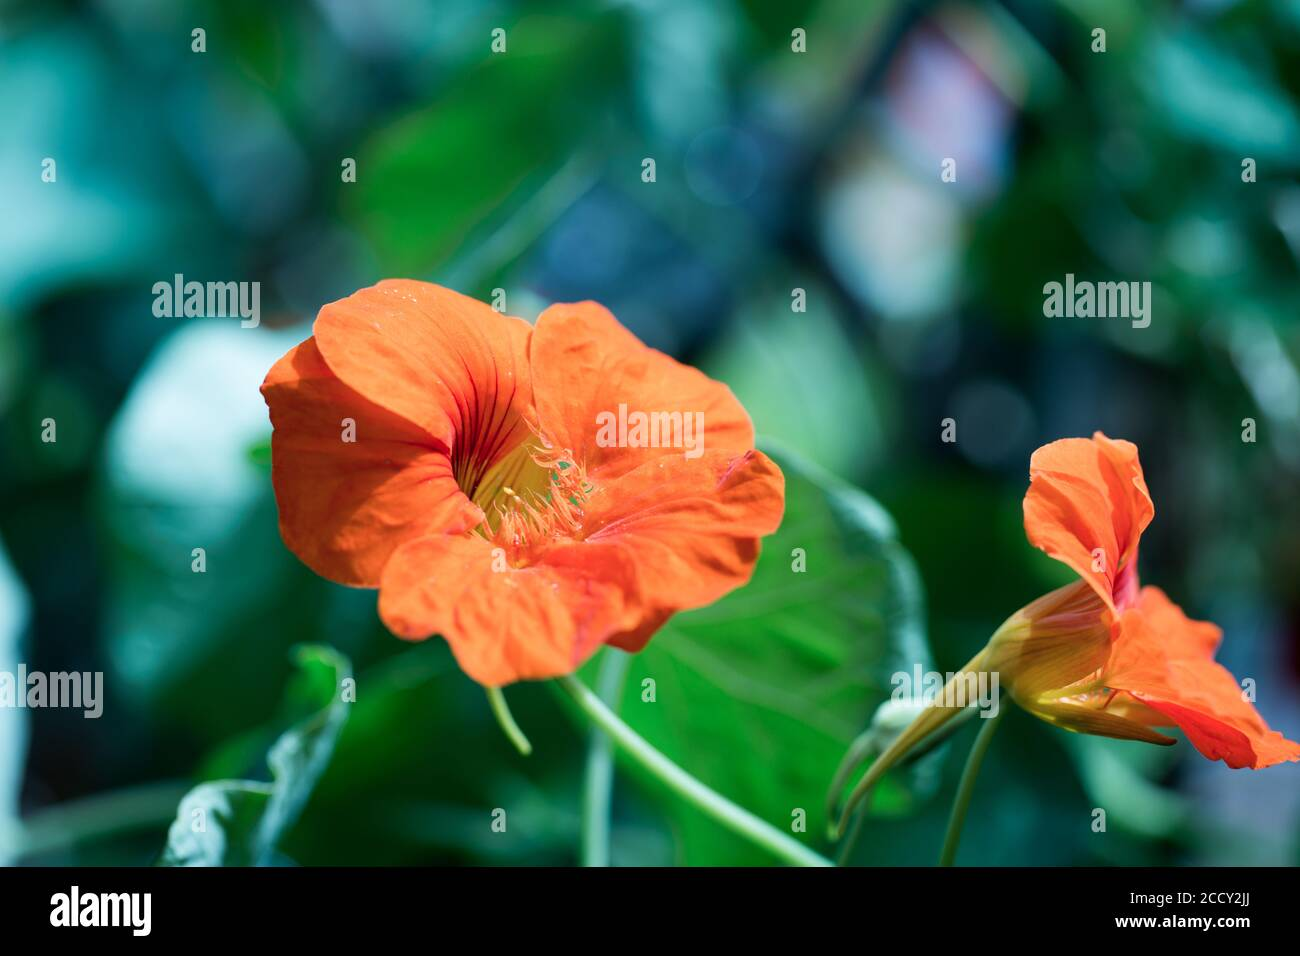 Bright Orange Nasturtium Flowers in full bloom against a bright green natural background.  A popular flower for children to grow as easy to grow Stock Photo